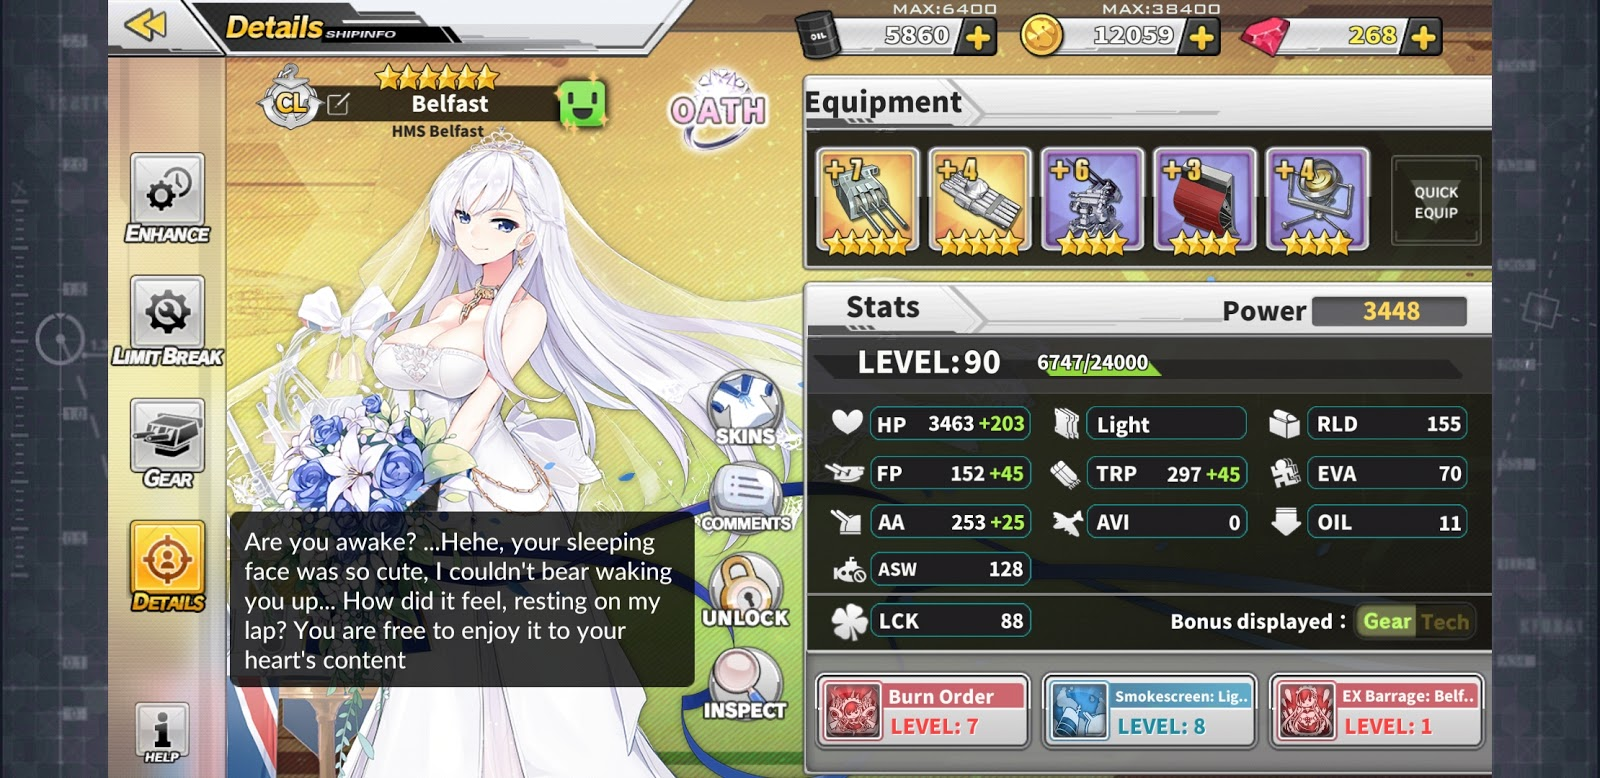 Hall Of Anime Fame I Have Been Playing Azur Lane For 2 Months And I Am Hooked A Review From A Guy Who Rarely Play Mobile Games Belfast (azur lane) is a character from azur lane. i have been playing azur lane for 2